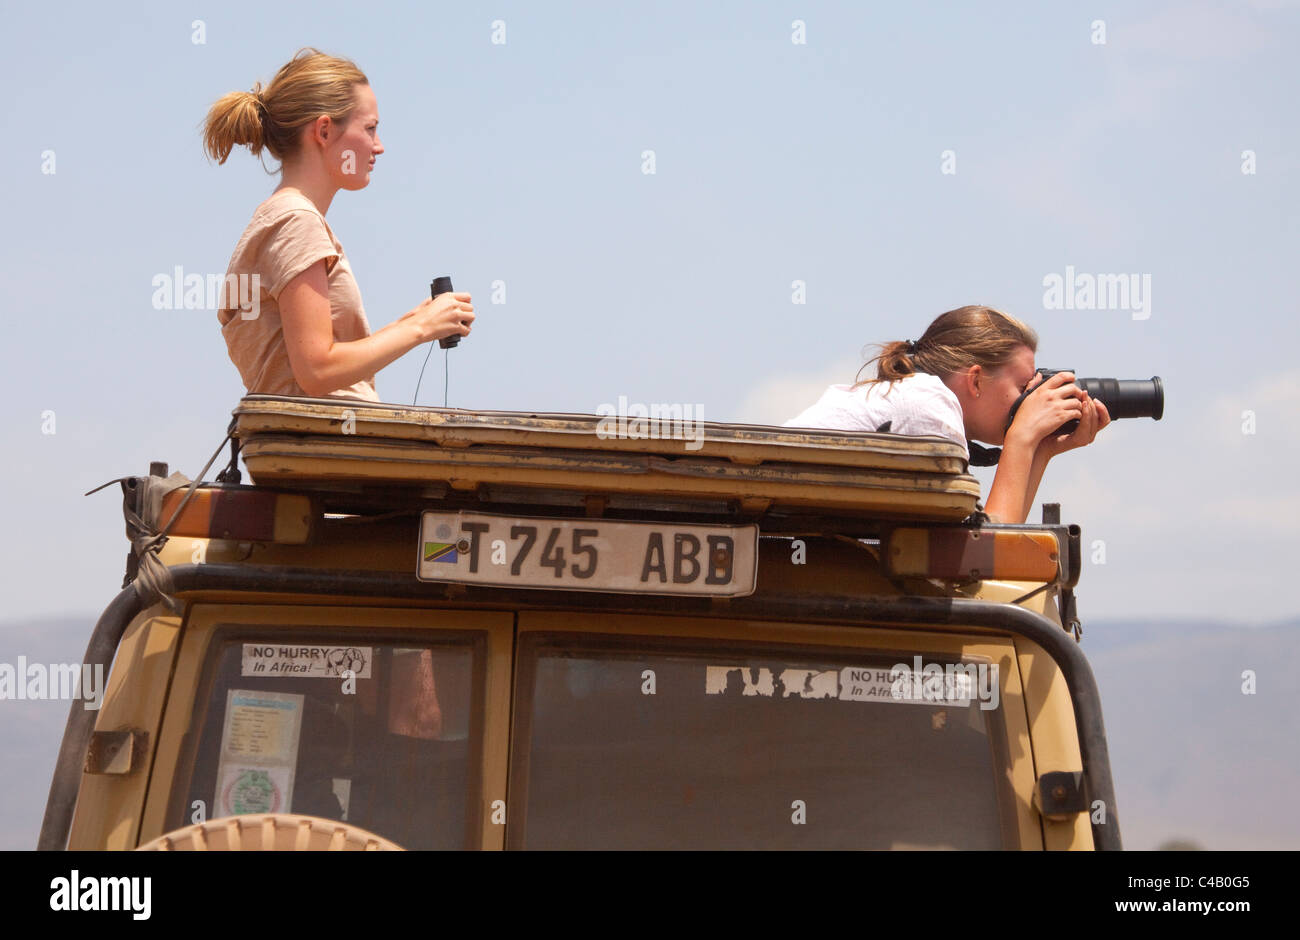 Tanzania, Ngorongoro. Two women look out from a safari vehicle at wildlife. - Stock Image